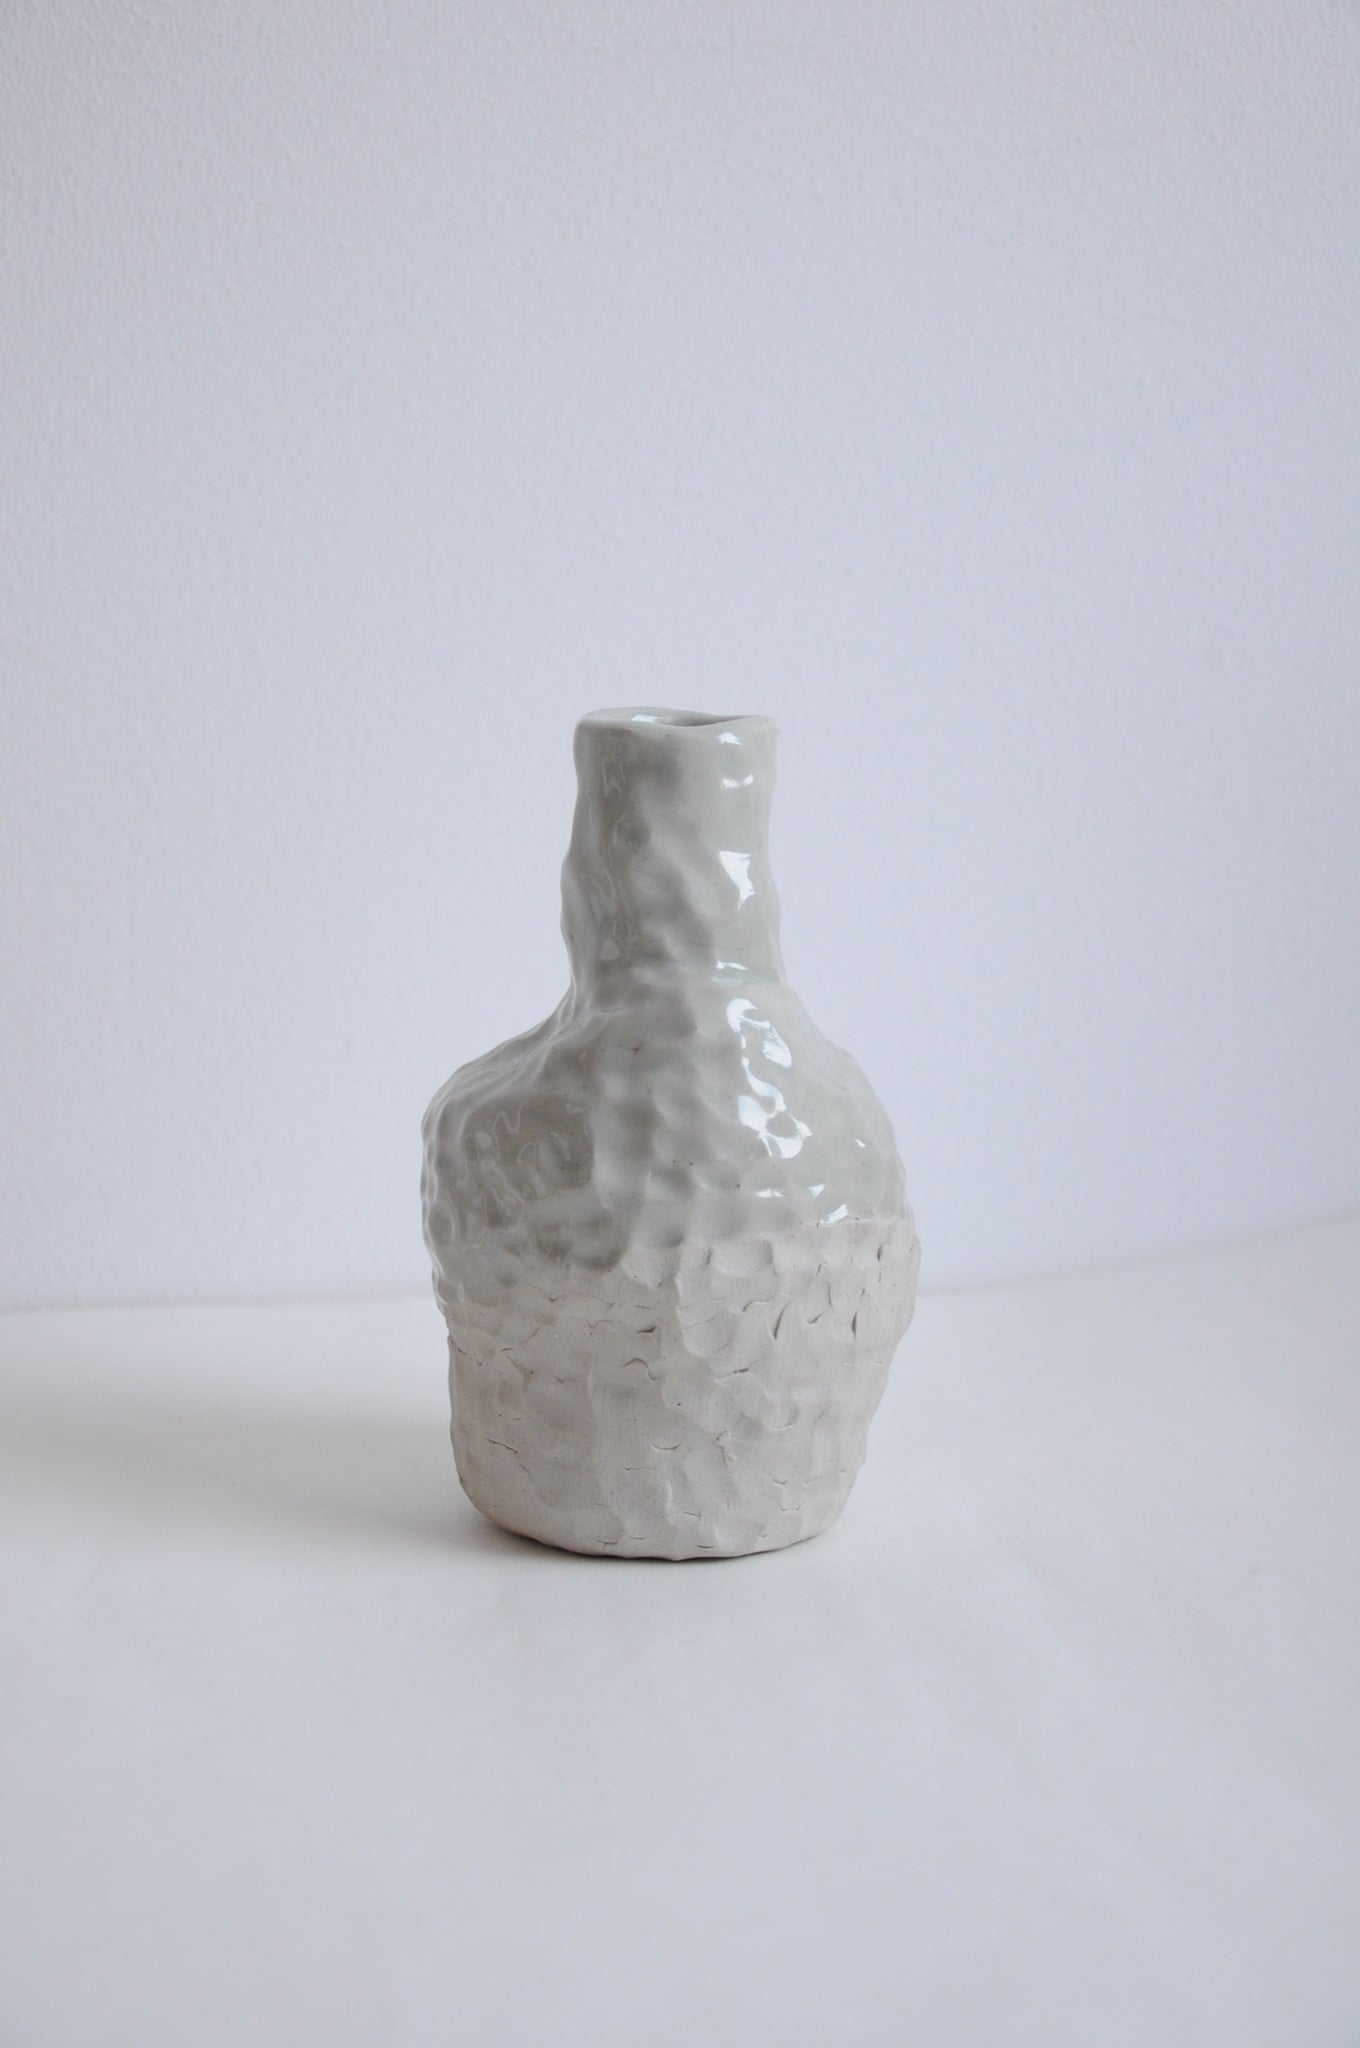 Vase with coiling technique by Krisztina Serra